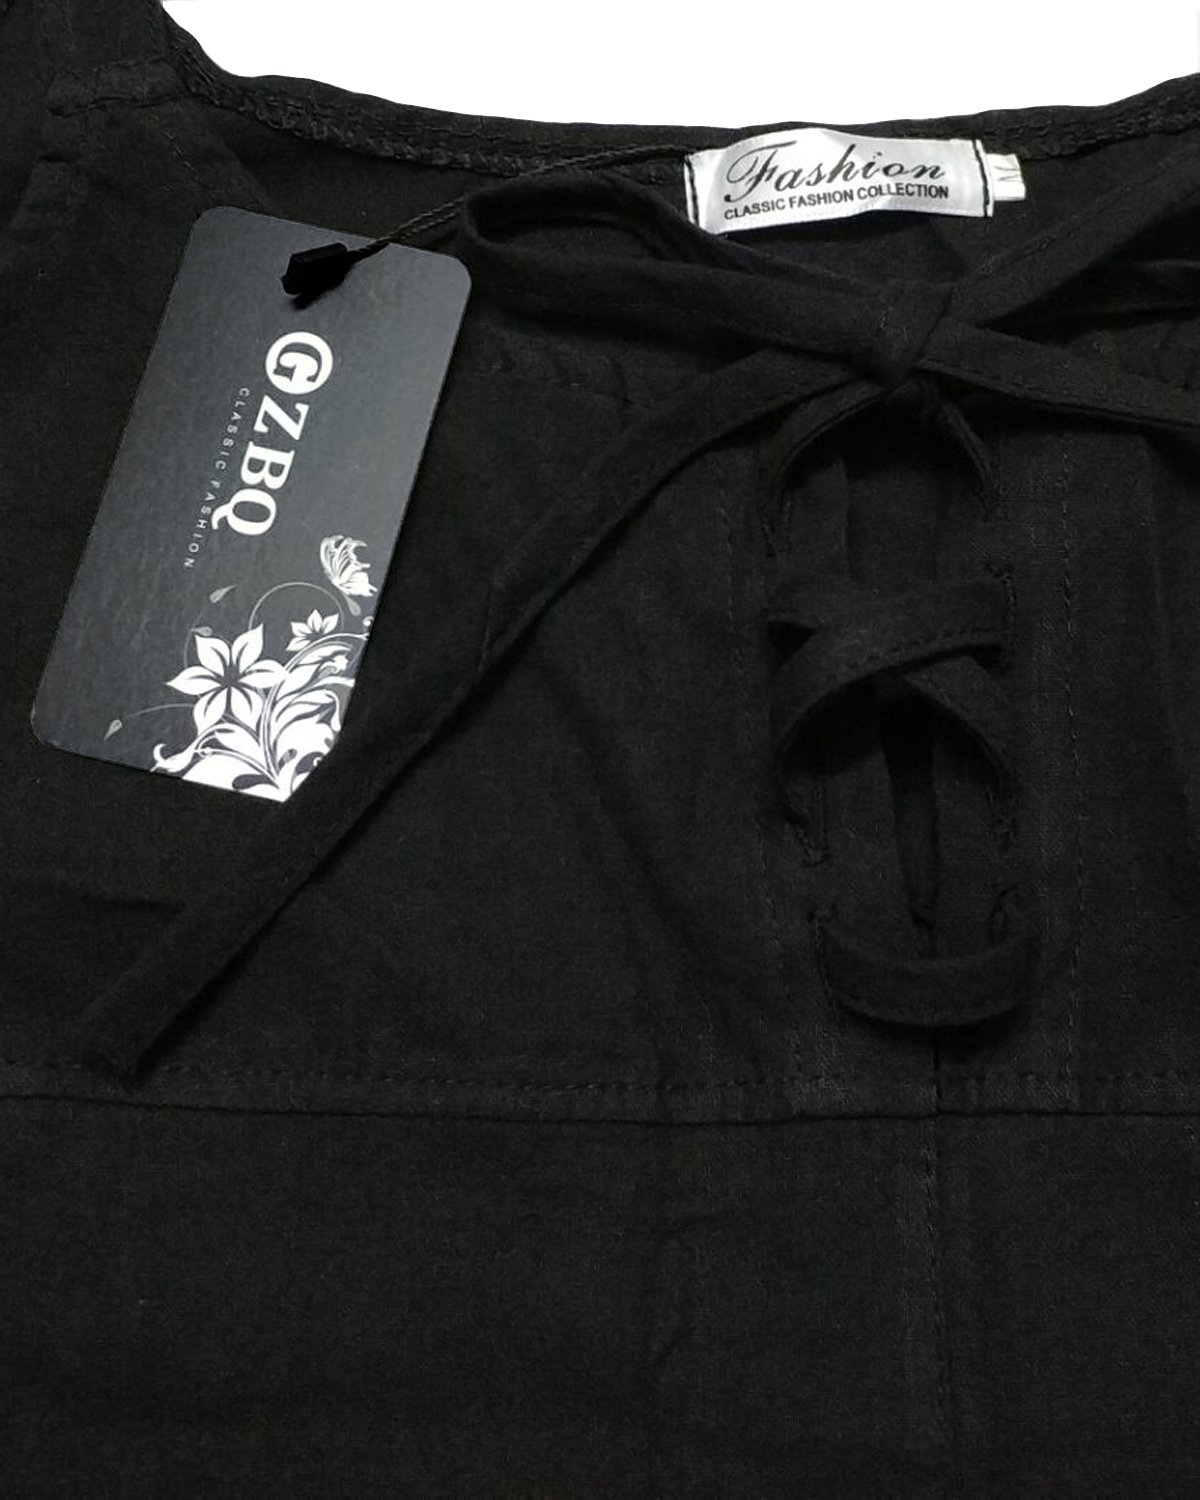 GZBQ Overalls for Women Casual Cotton Jumpsuit Plus Size Baggy Bib Wide Leg Overalls Pants Black 2XL by GZBQ (Image #5)